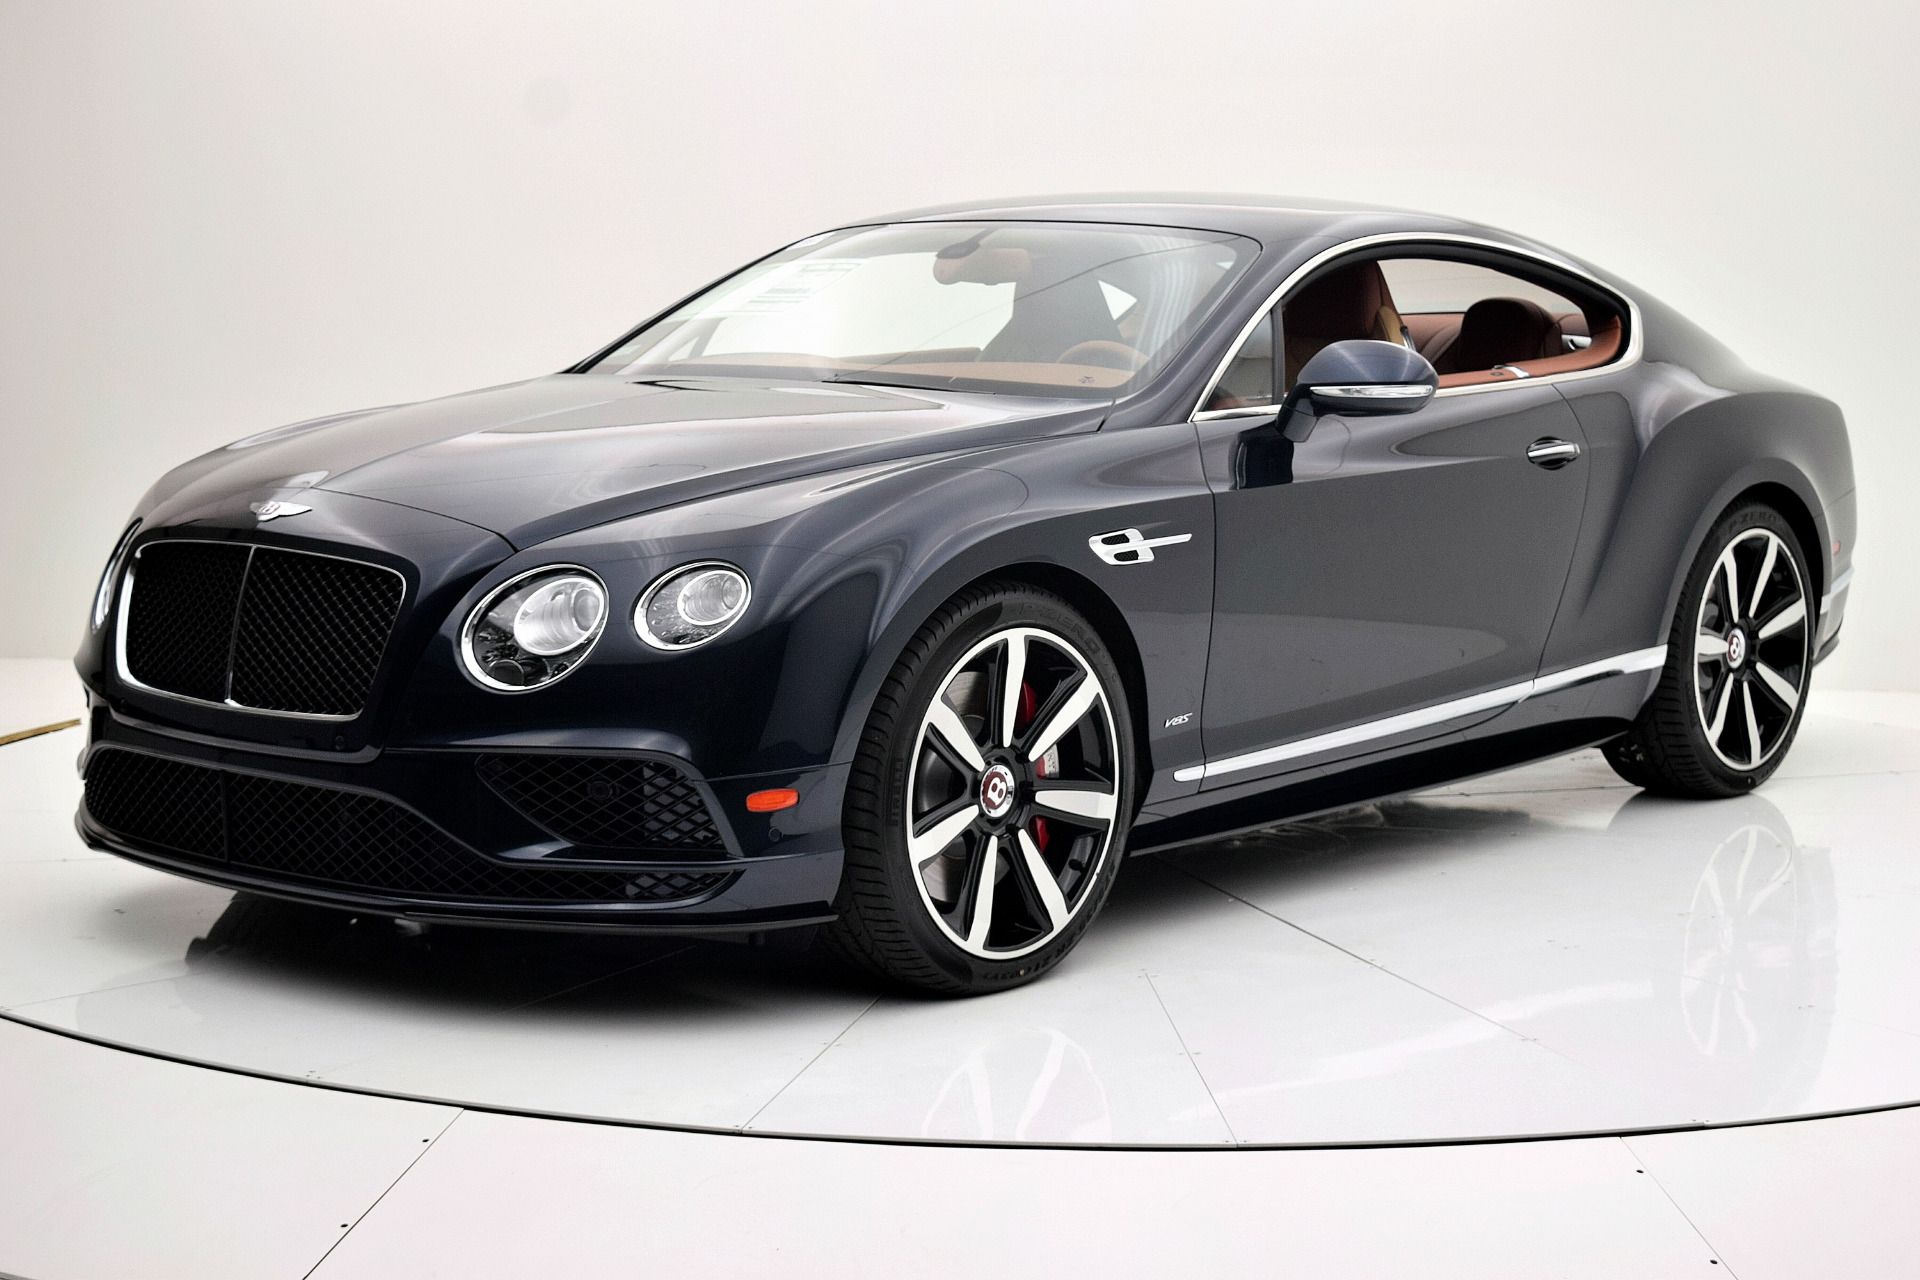 Bentley Continental GT 2016 For Sale $154880 Stock Number 1518JI